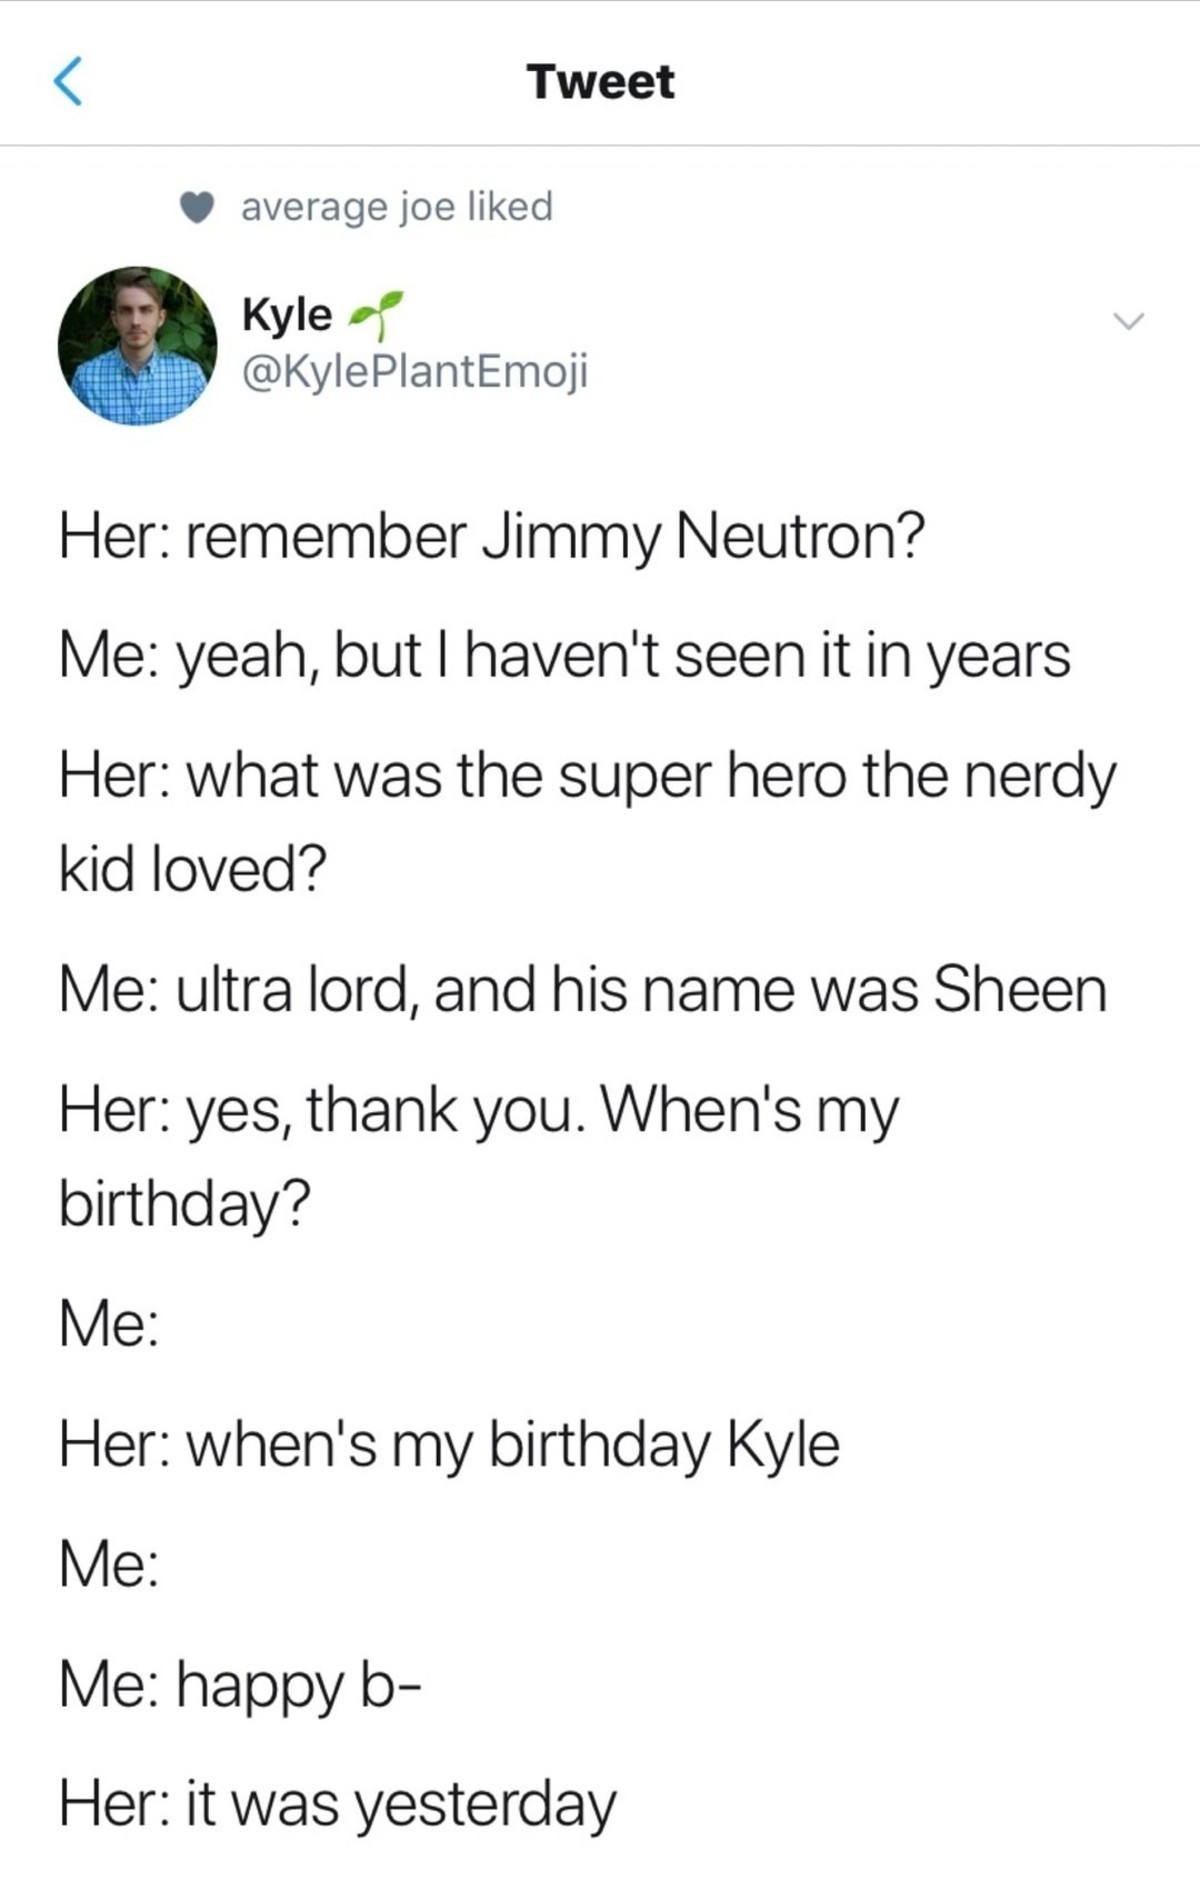 unintended Stingray. .. Ones a show that was wild and repetitive. You'd hear ultralord maybe 20 times in an episode. Someone tells me their birthday once... Yea that's gone forever